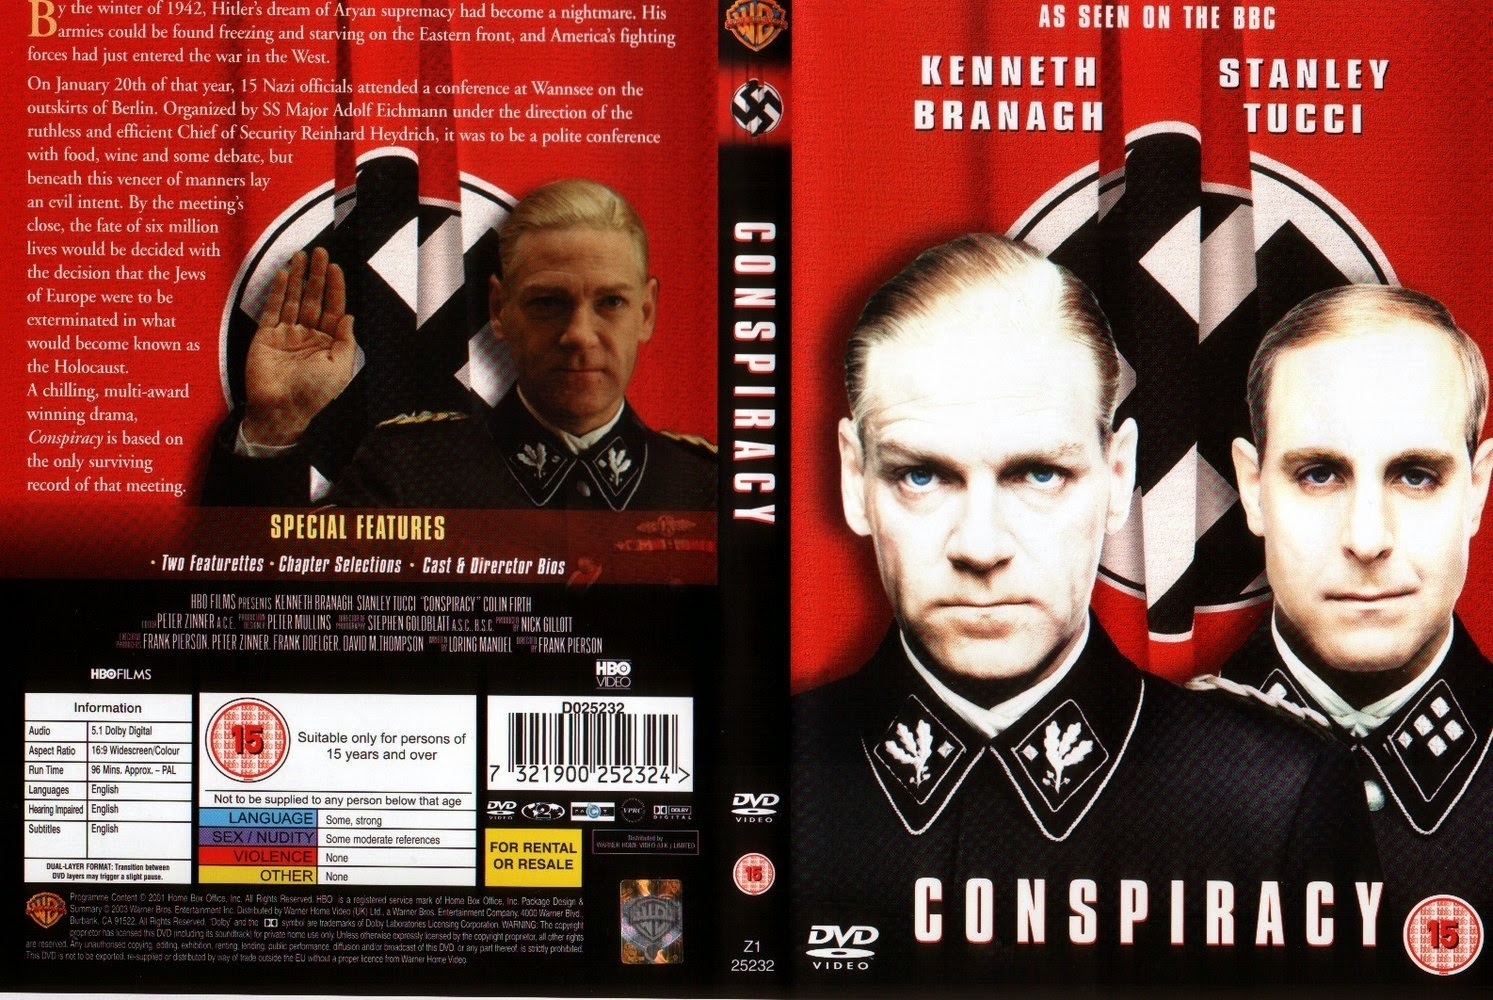 Conspiracy - Top Documentary Films